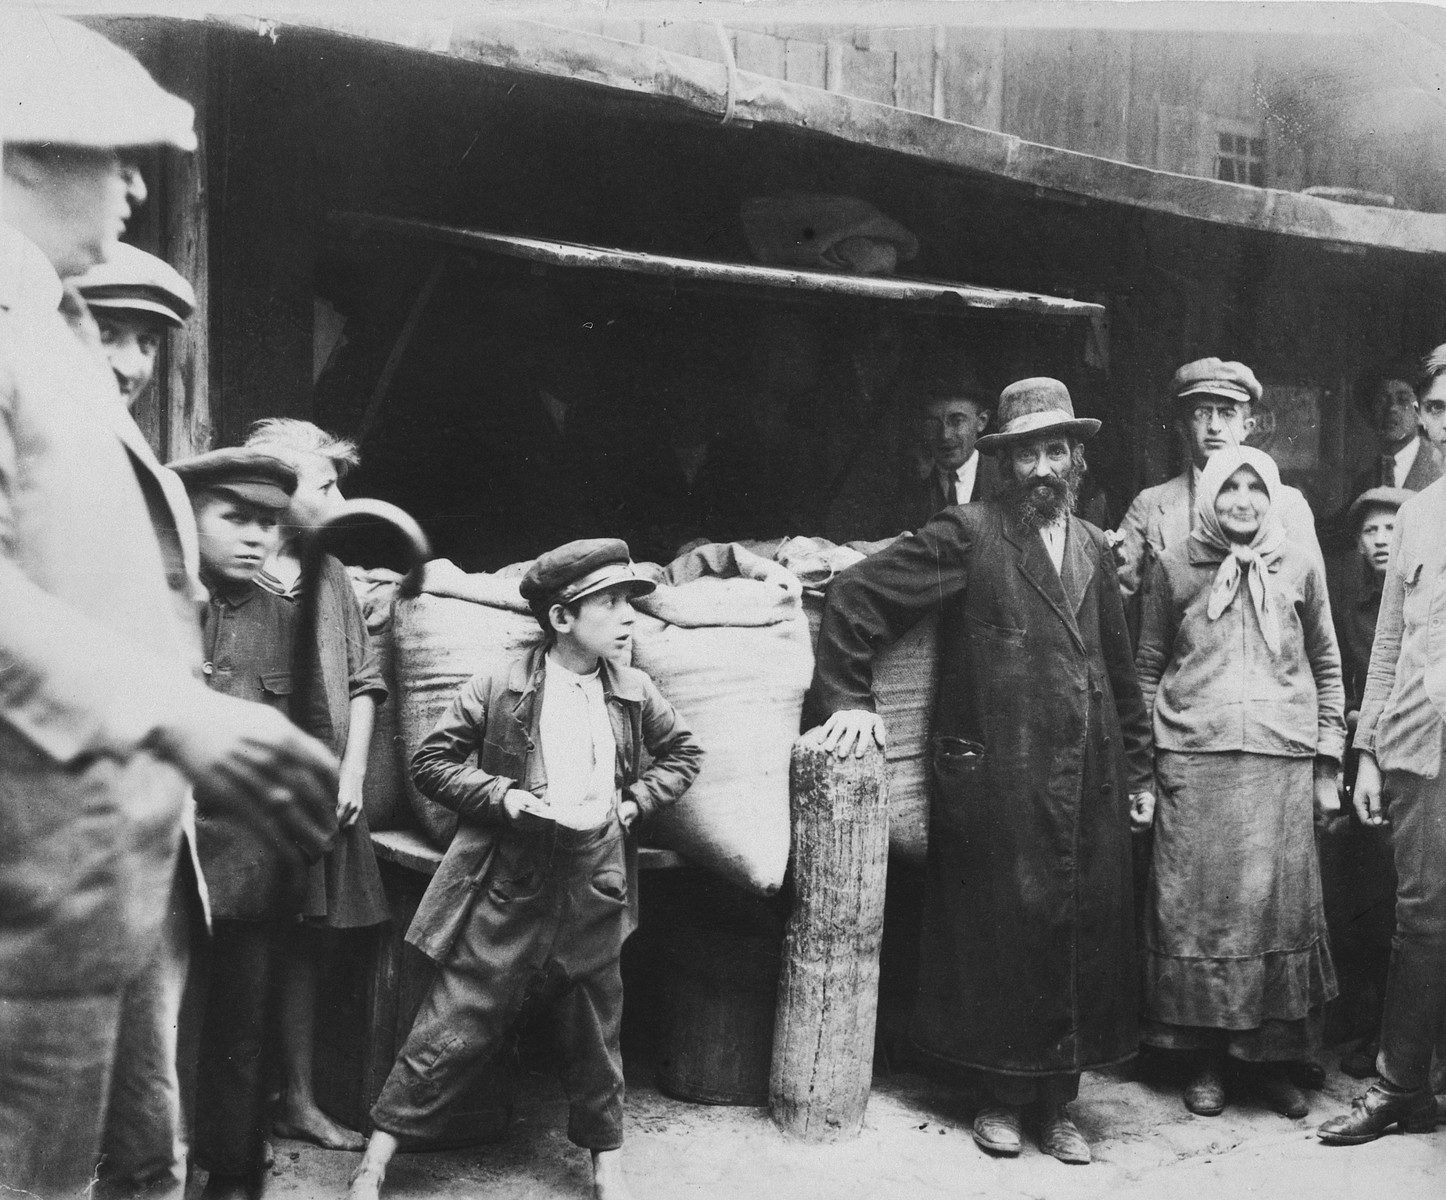 A Jewish family poses in front of their grains stall in the Drohobycz marketplace.  On the far left is Harry Handel, a relative from America.  On the right is the grandmother of the donor.